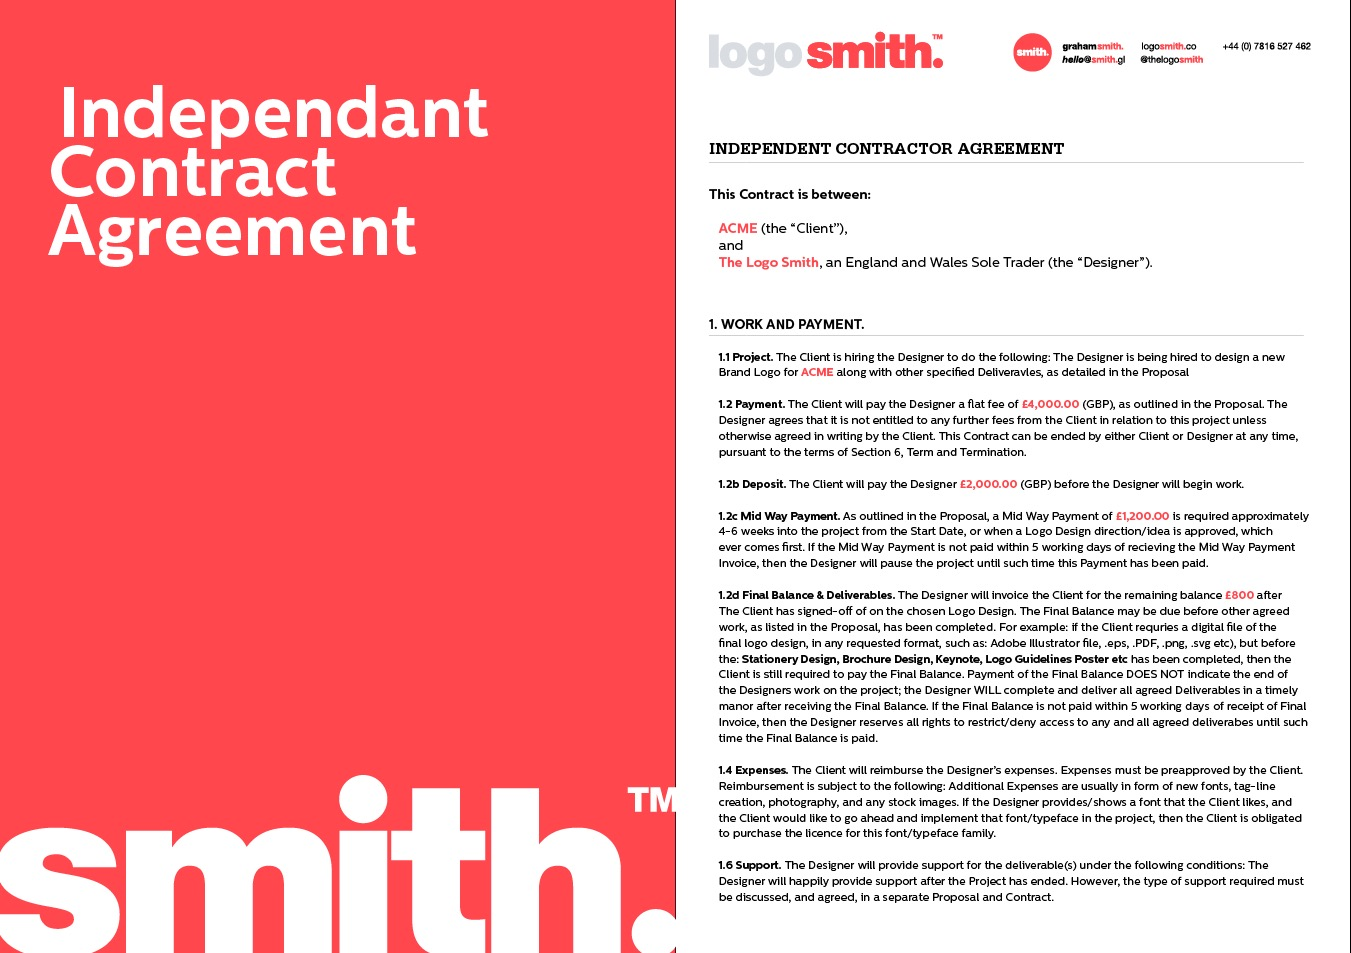 Freelance Designer Contract Independent Contractor Agreement Template to Download